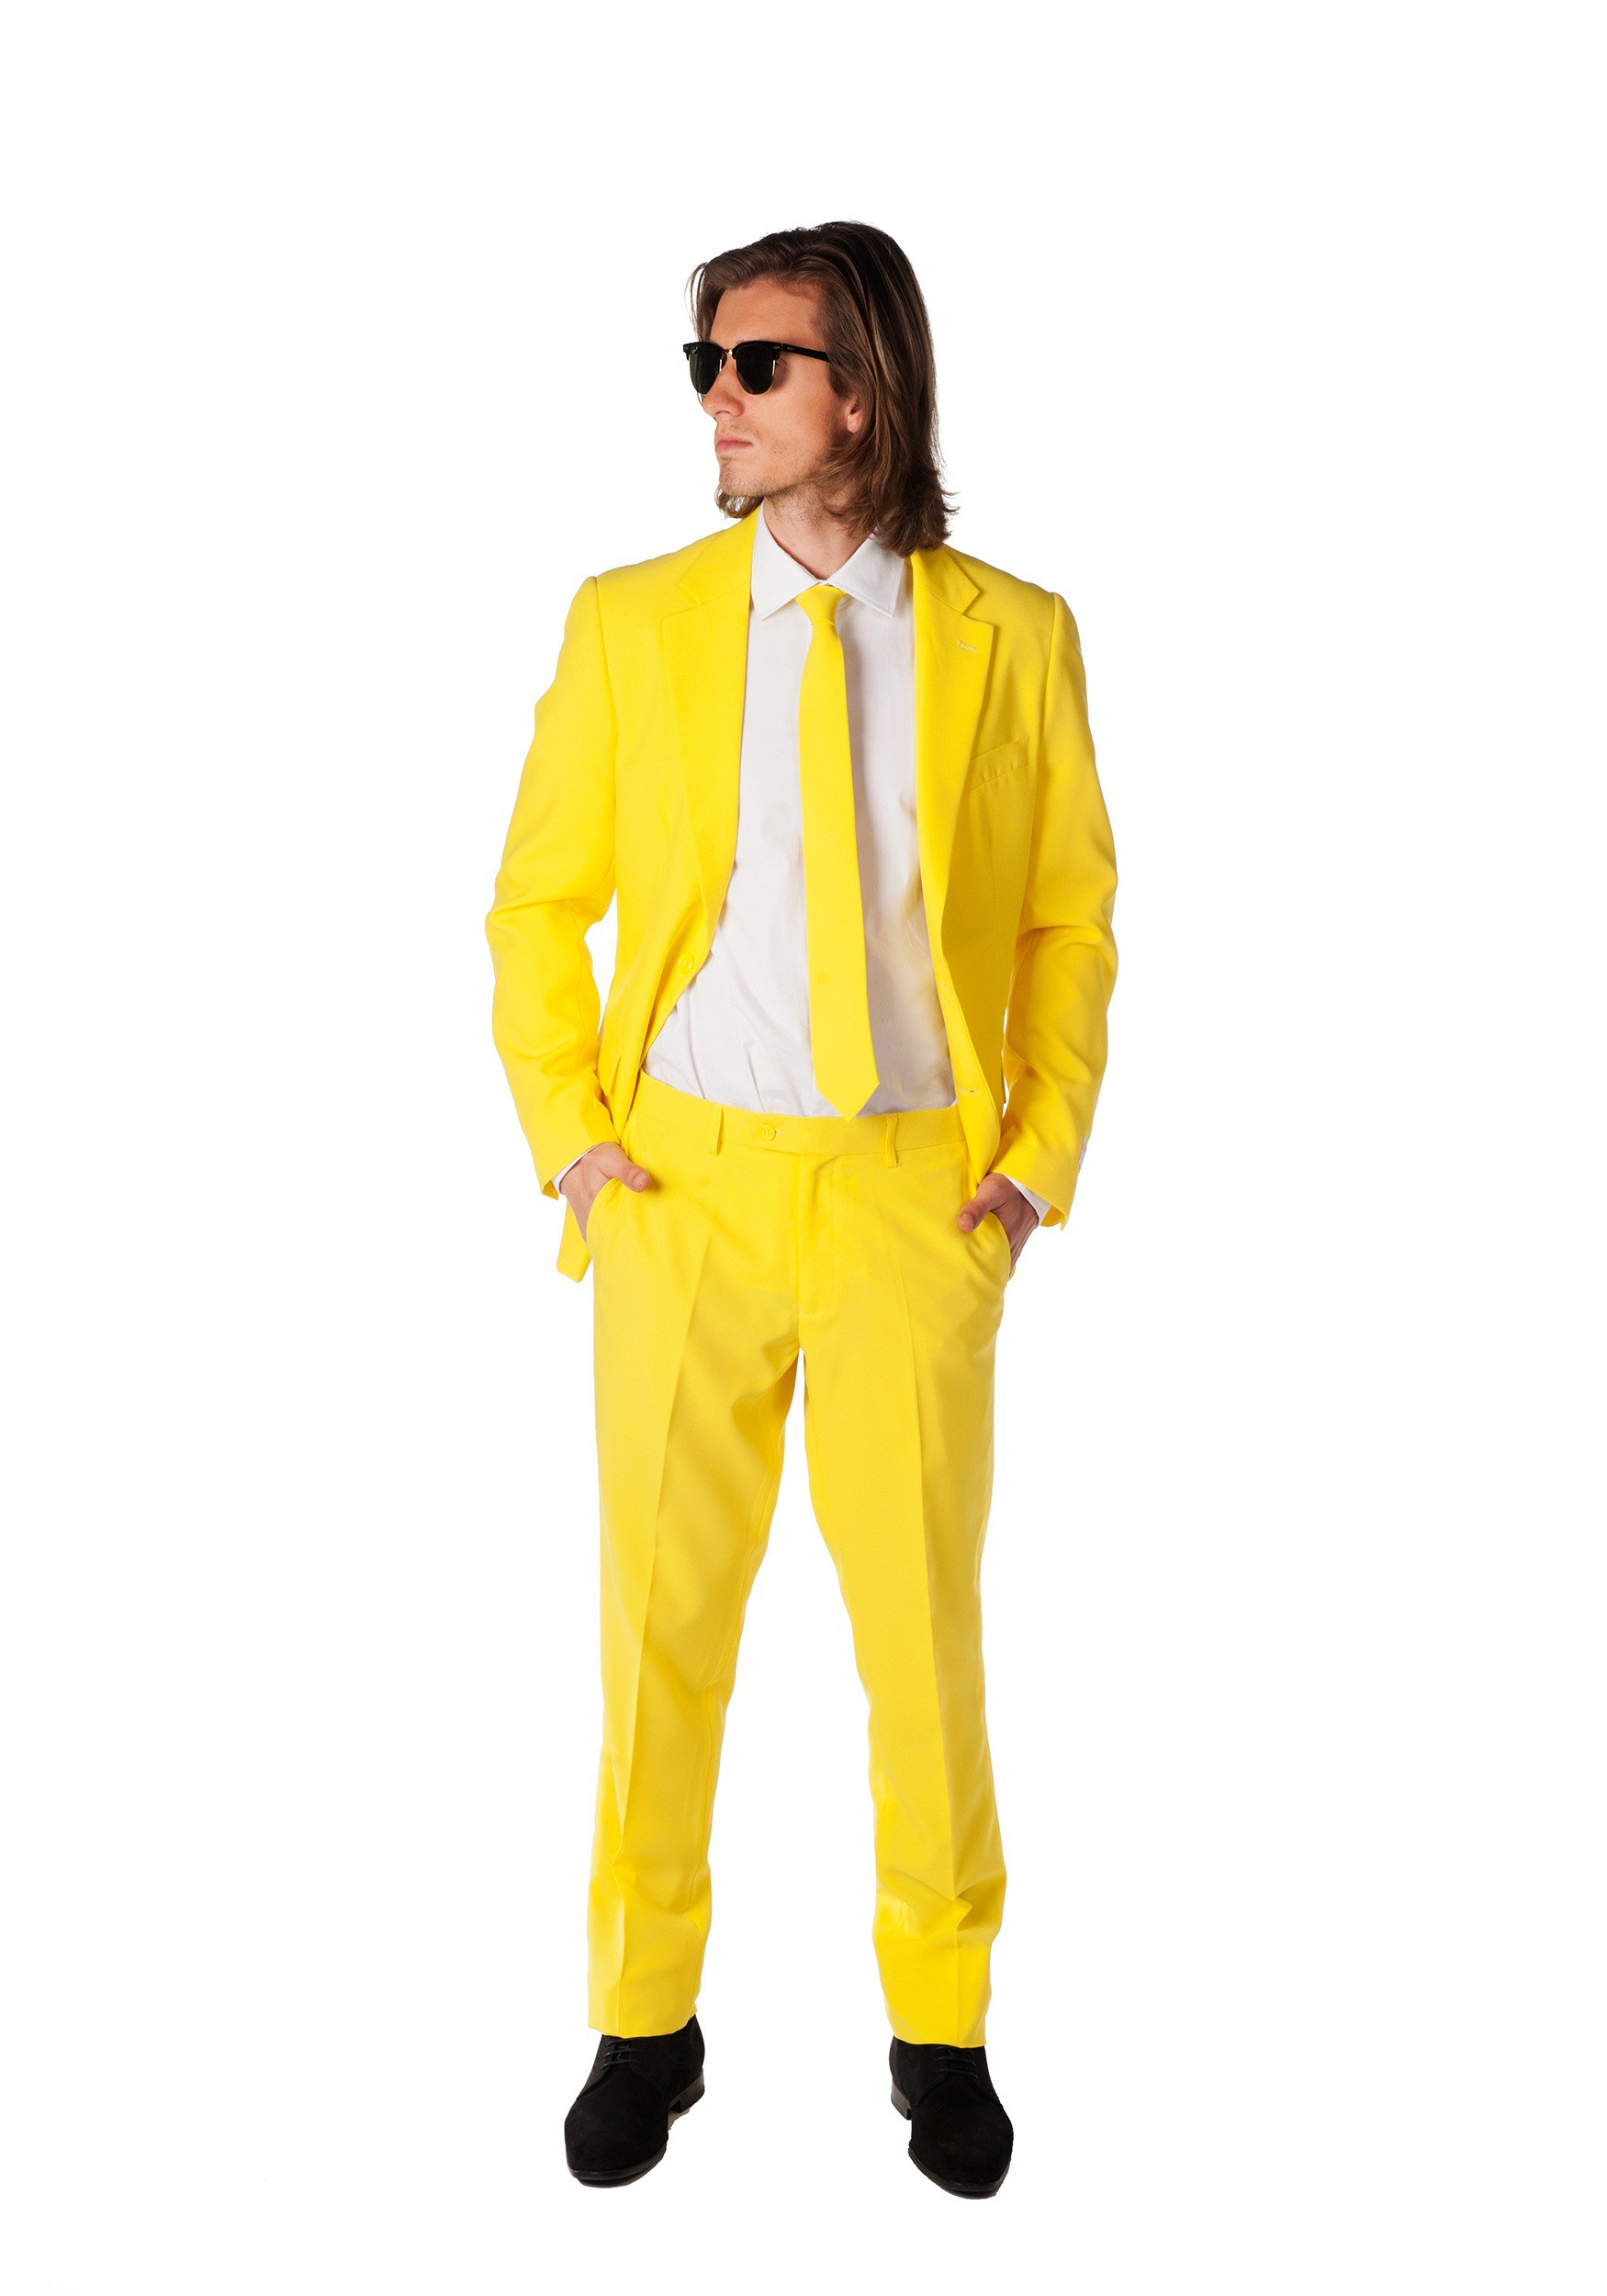 5d1789ccd13f05 mens-opposuits-yellow-suit.jpg